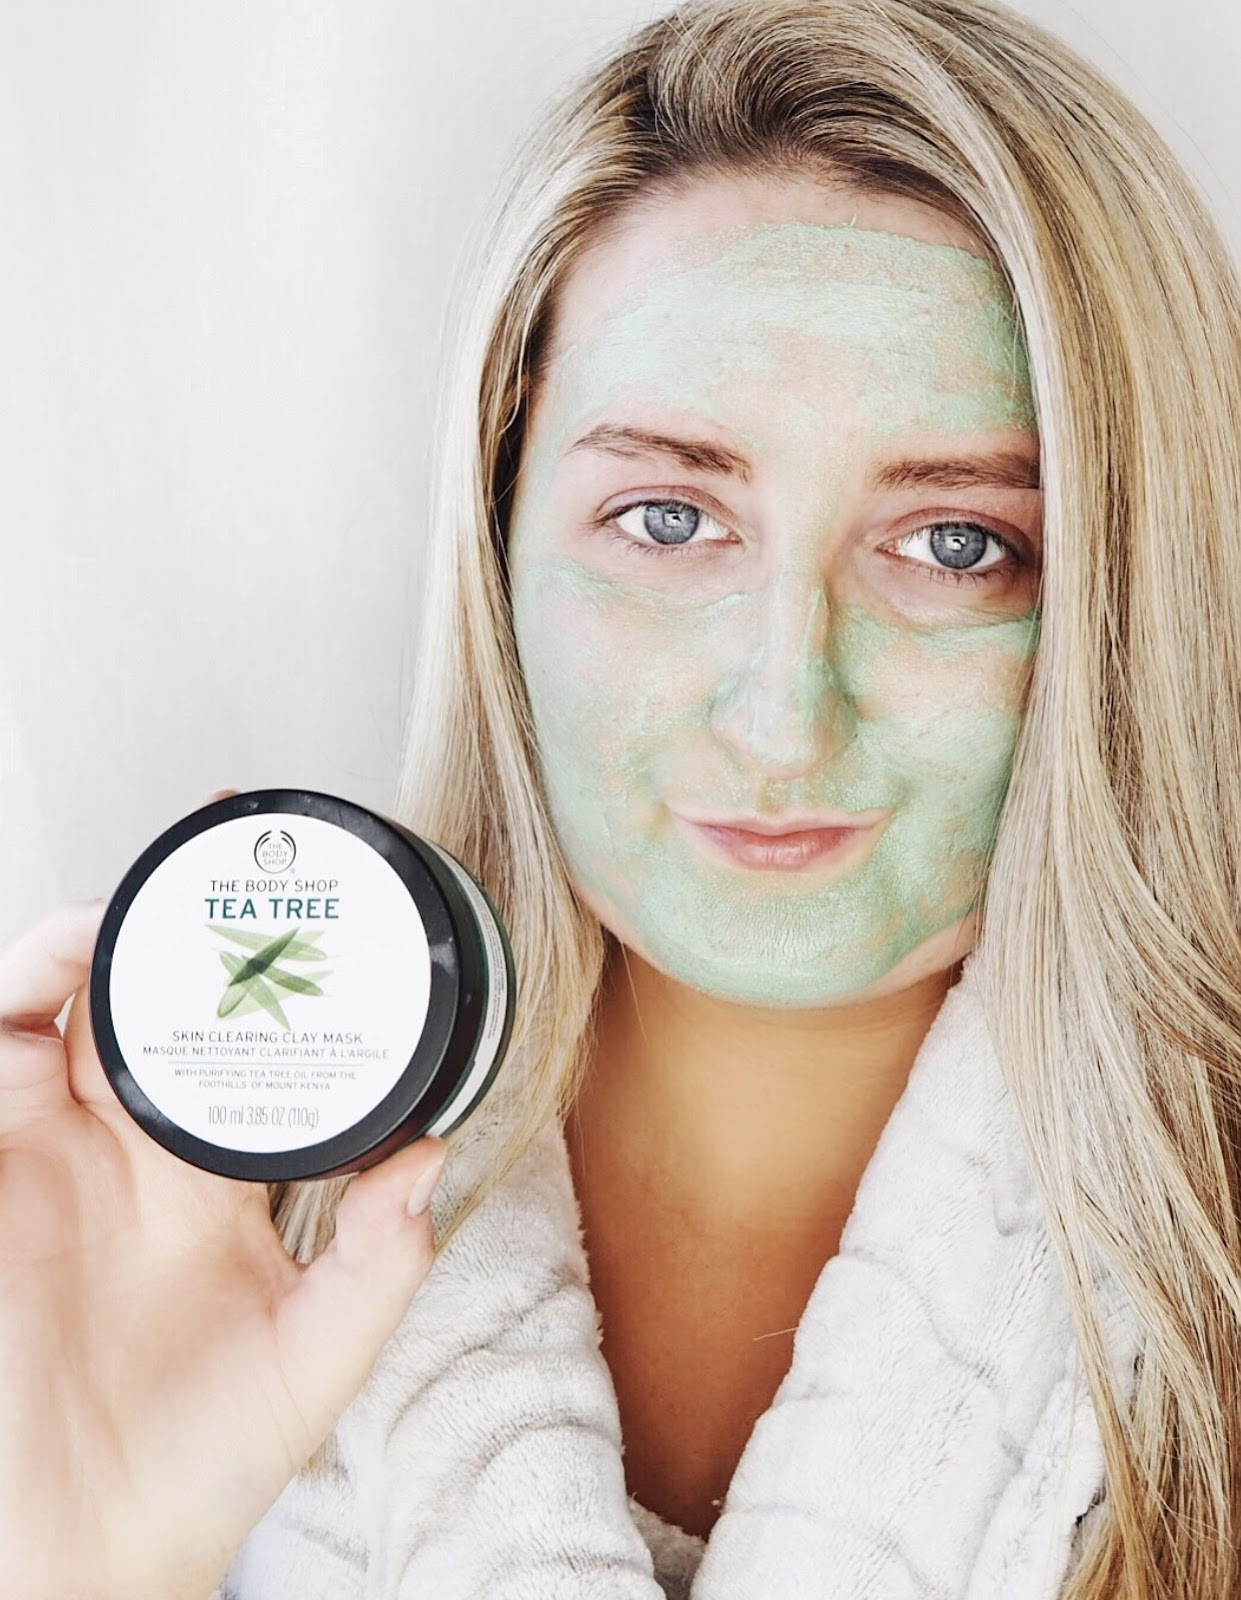 Blonde girl holding and wearing (having applied) The Body Shop Tea Tree Skin Clearing Clay Face Mask against a white background in a bathroom setting